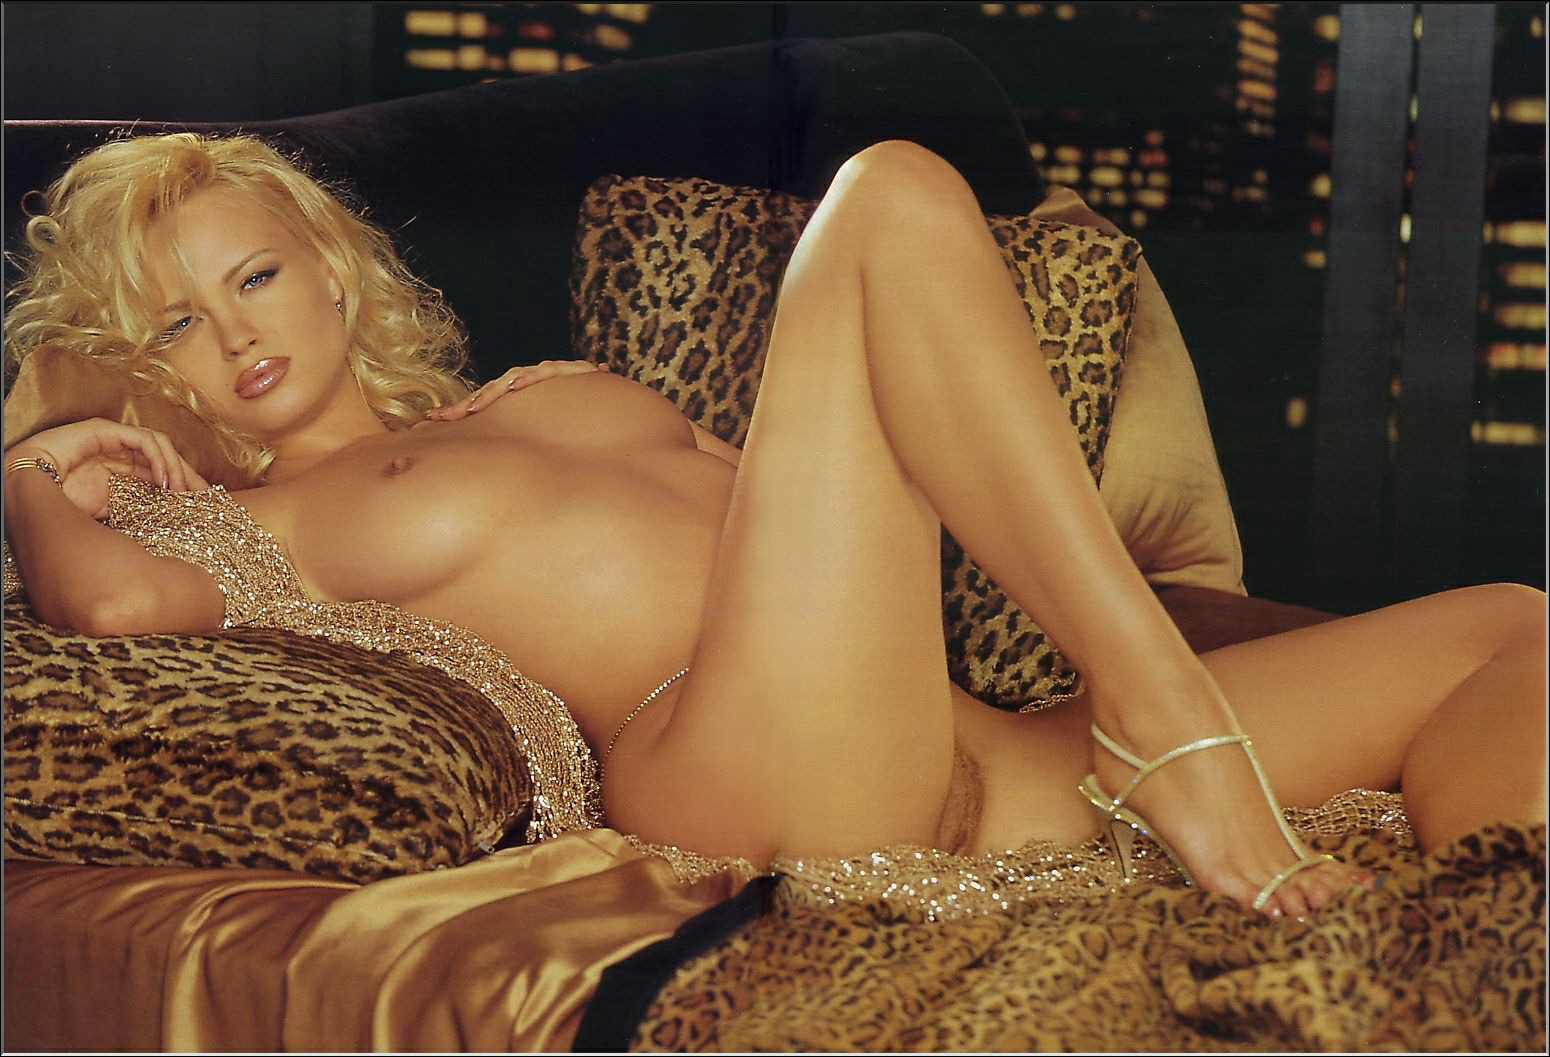 tiffany kane playboy nude